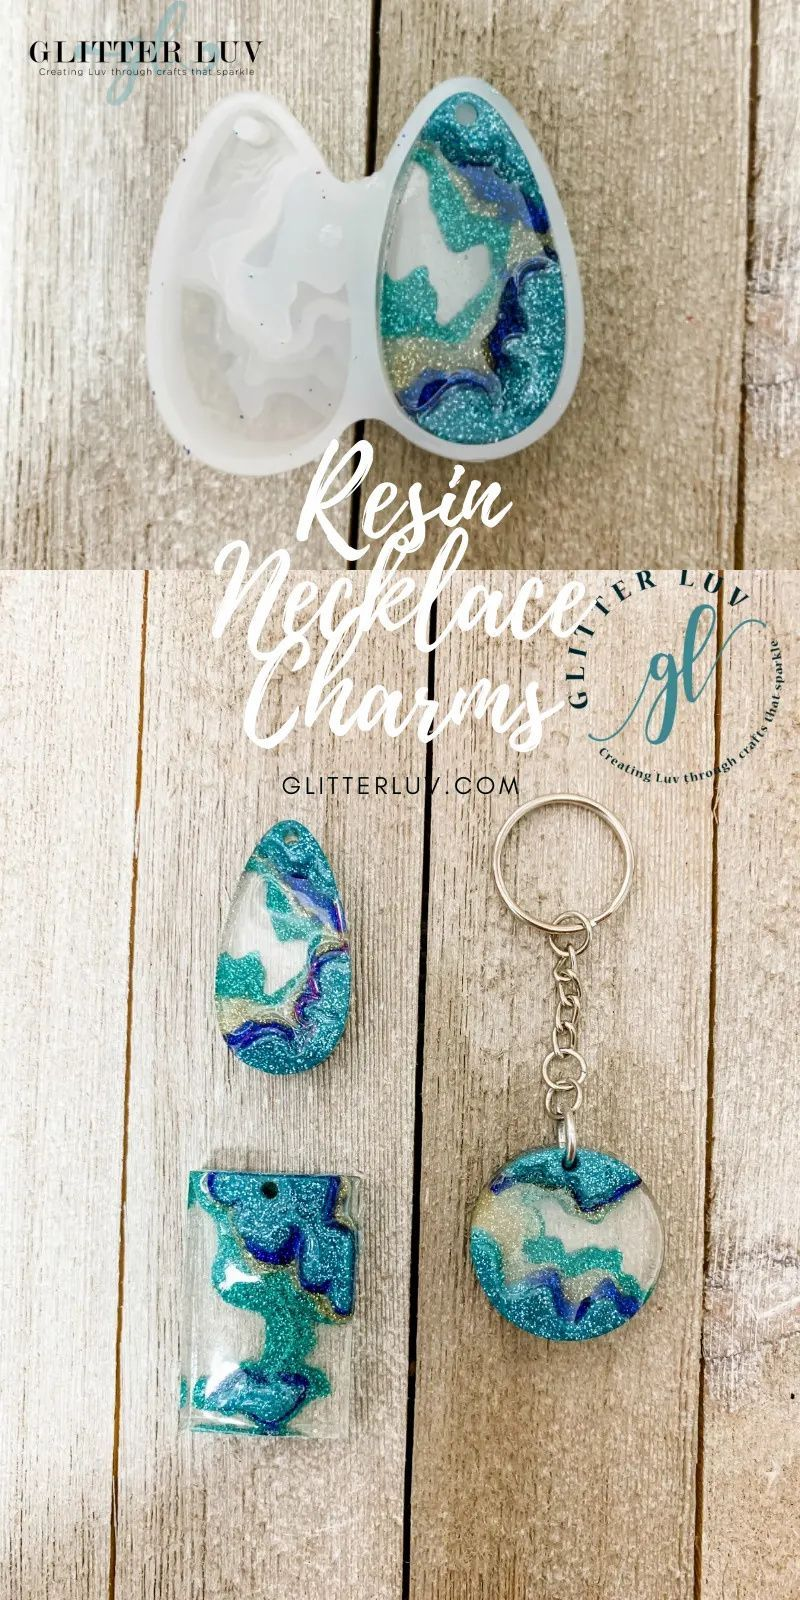 Make your own agate inspired DIY Resin Necklaces with this tutorial and molds that make it easy via GlitterLuv.com #resin #epoxyresin #resincharms #glittercrafts